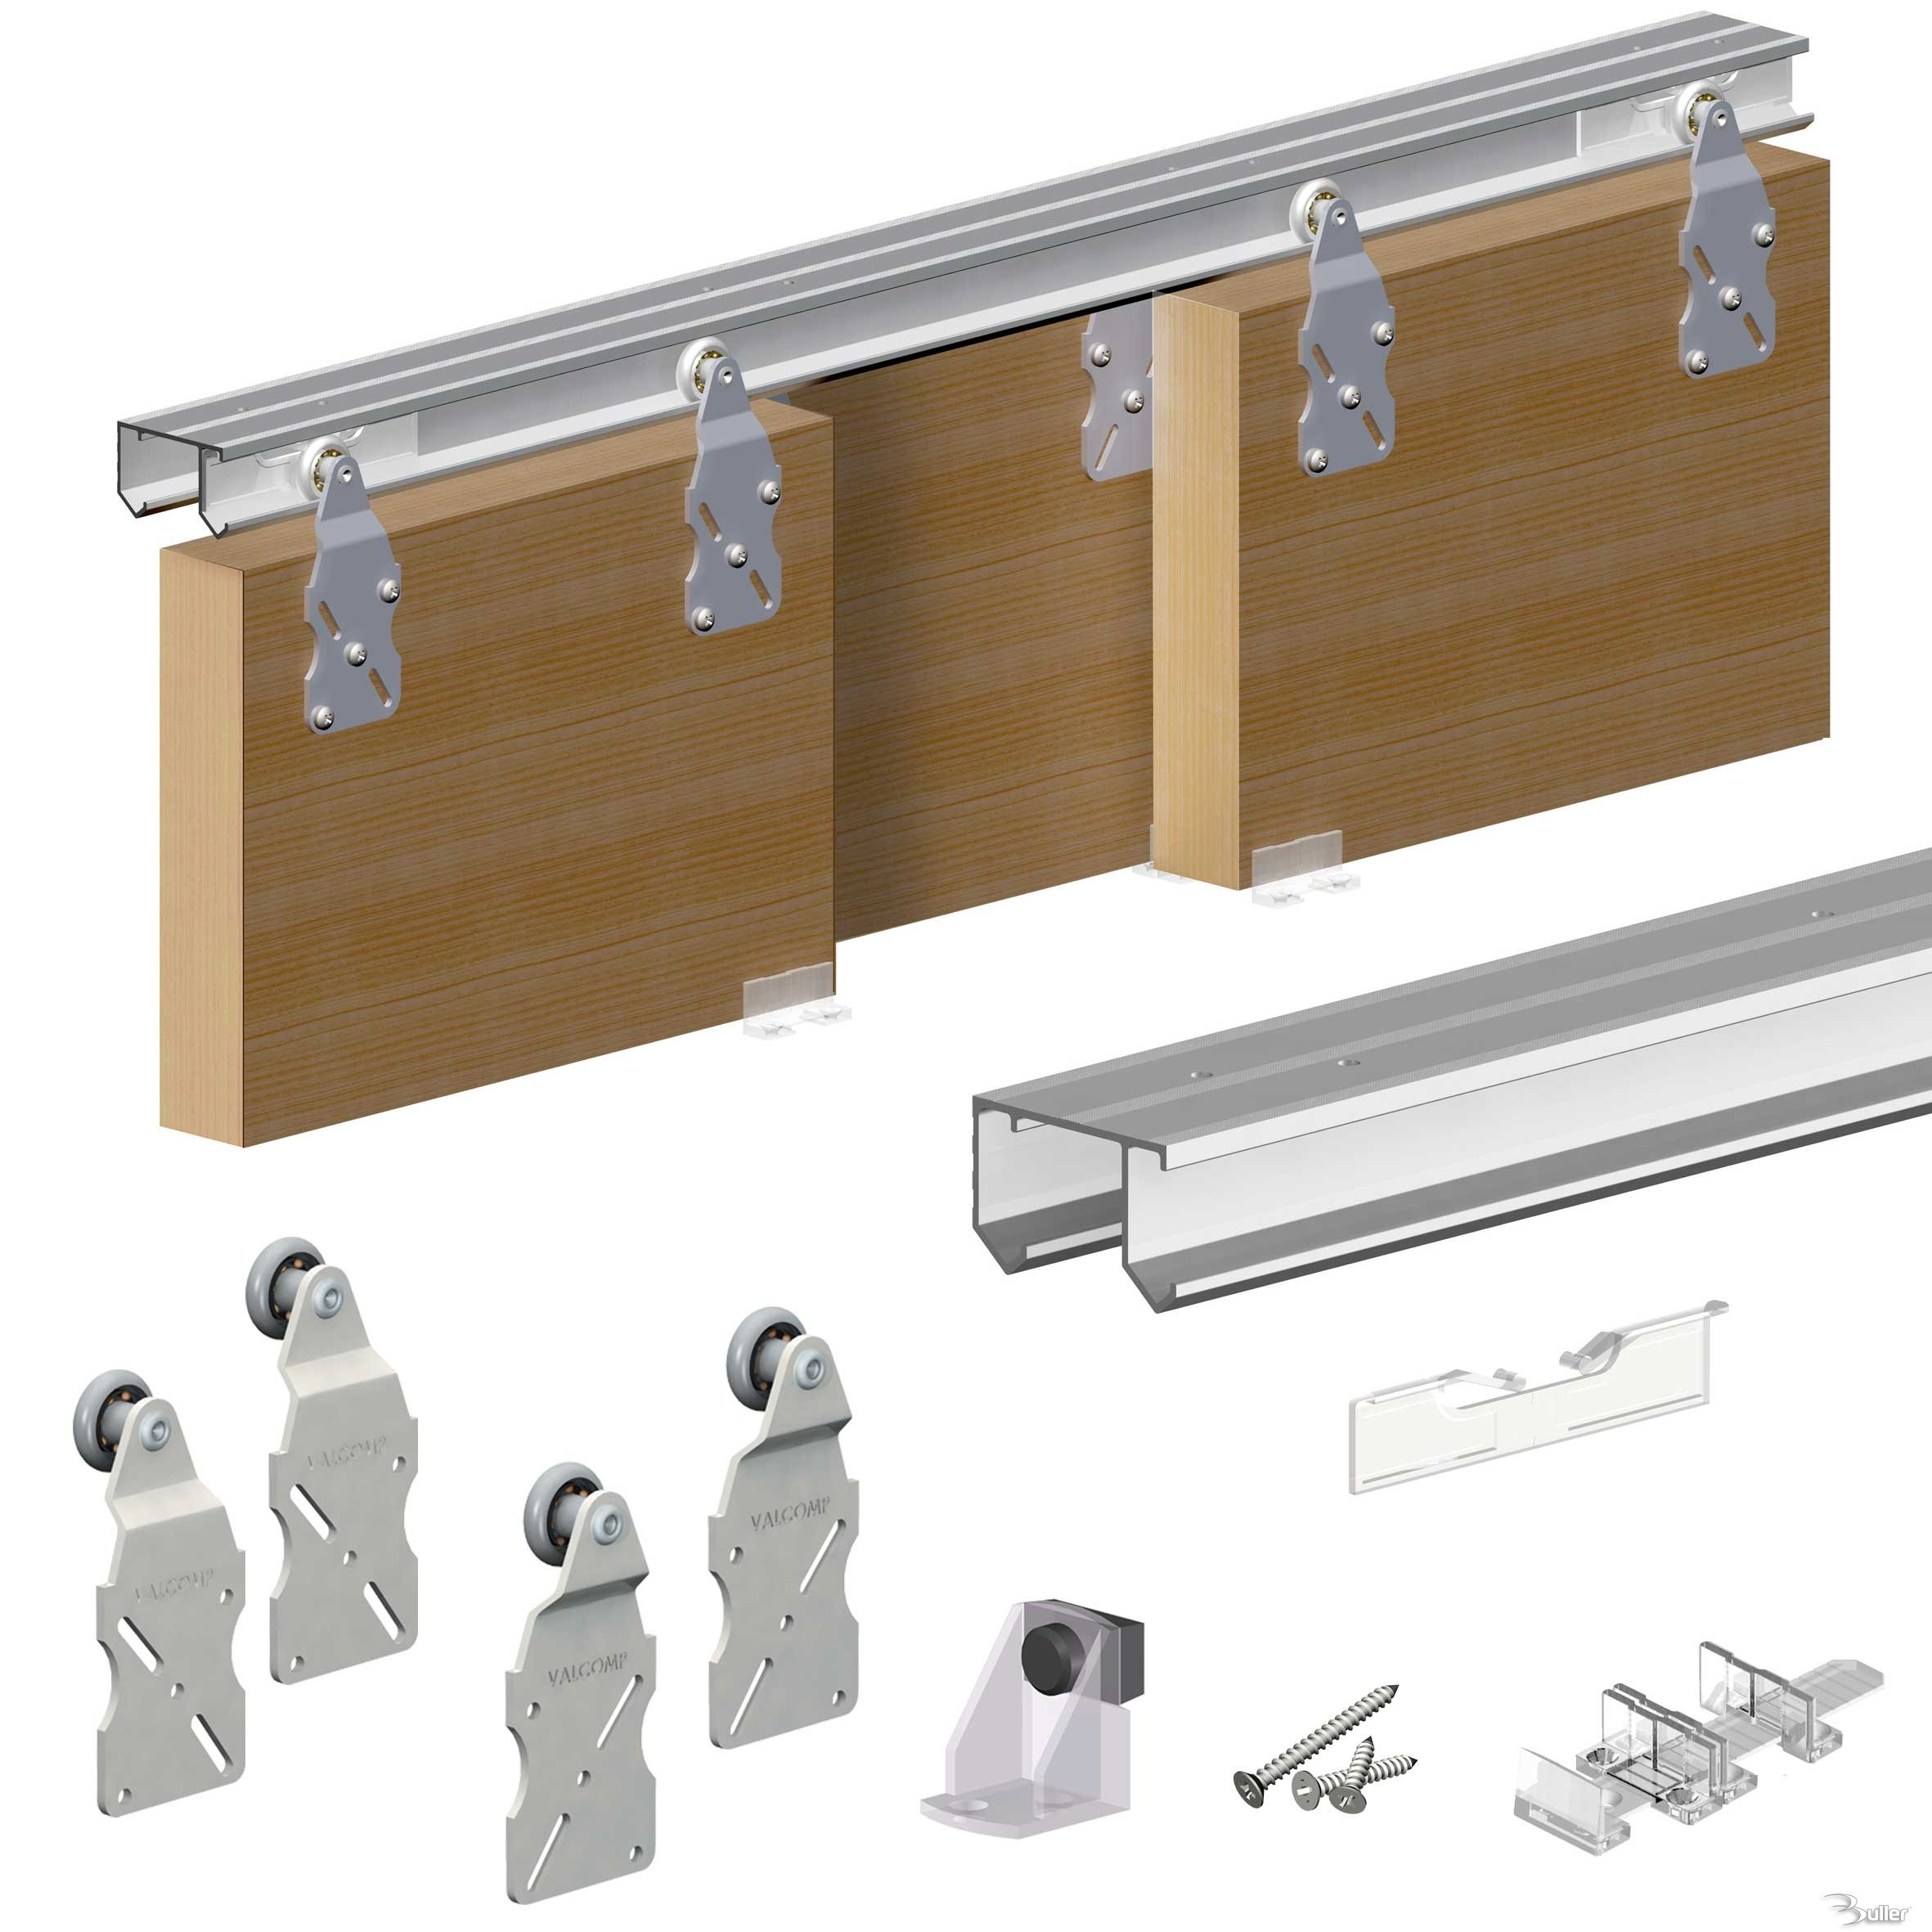 Hanging Pocket Door Rollers